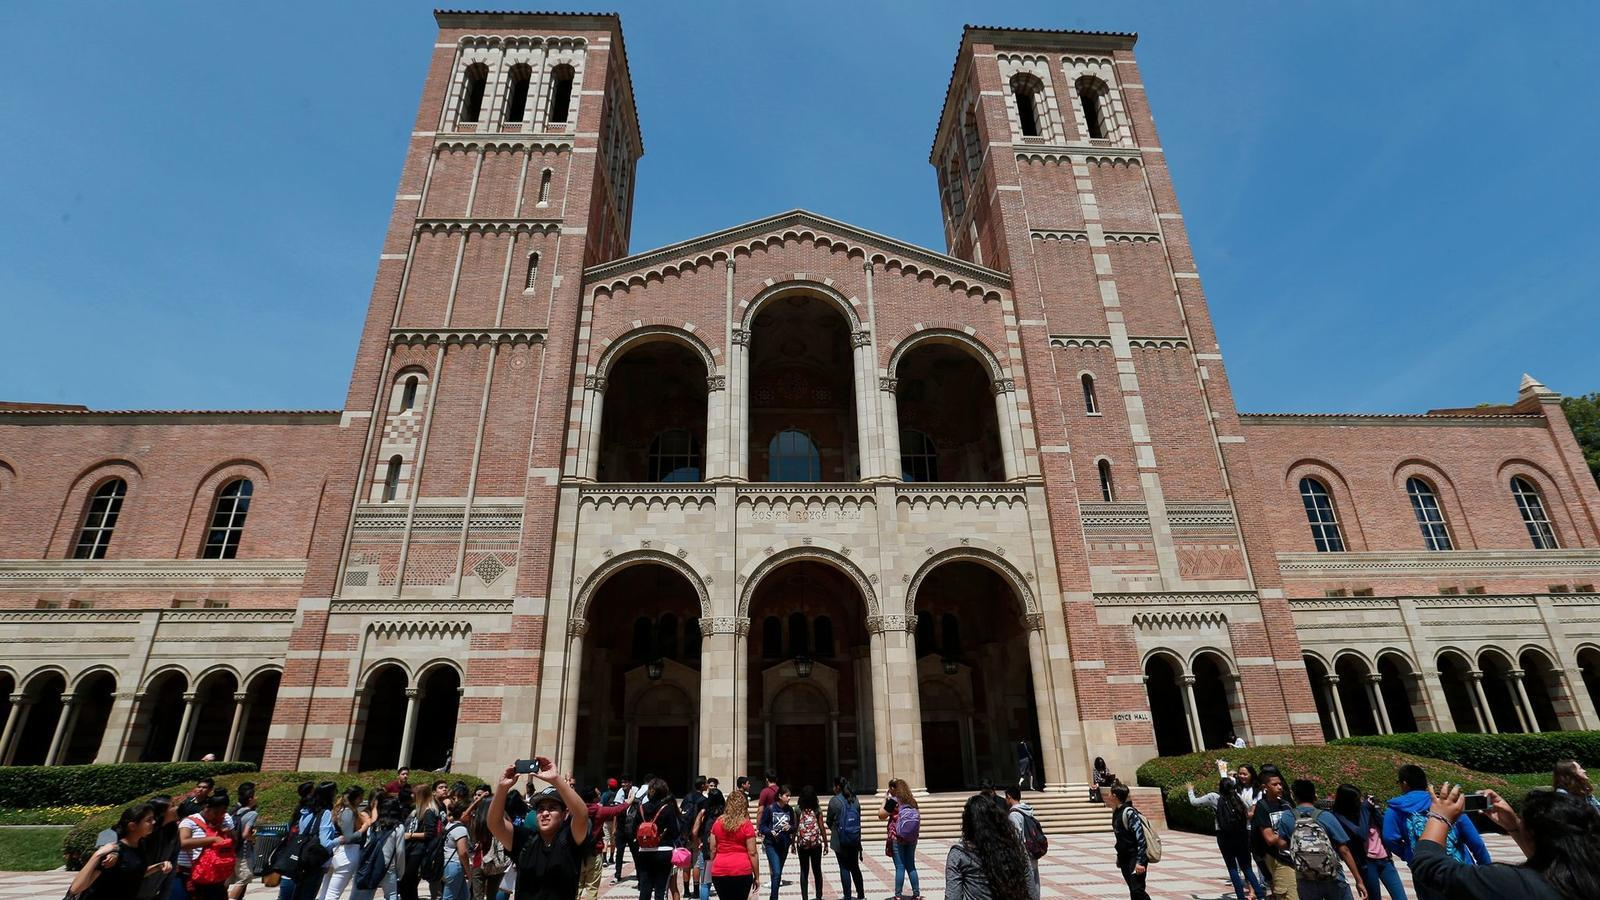 Audit: University of California Hid $175M in Secret Fund